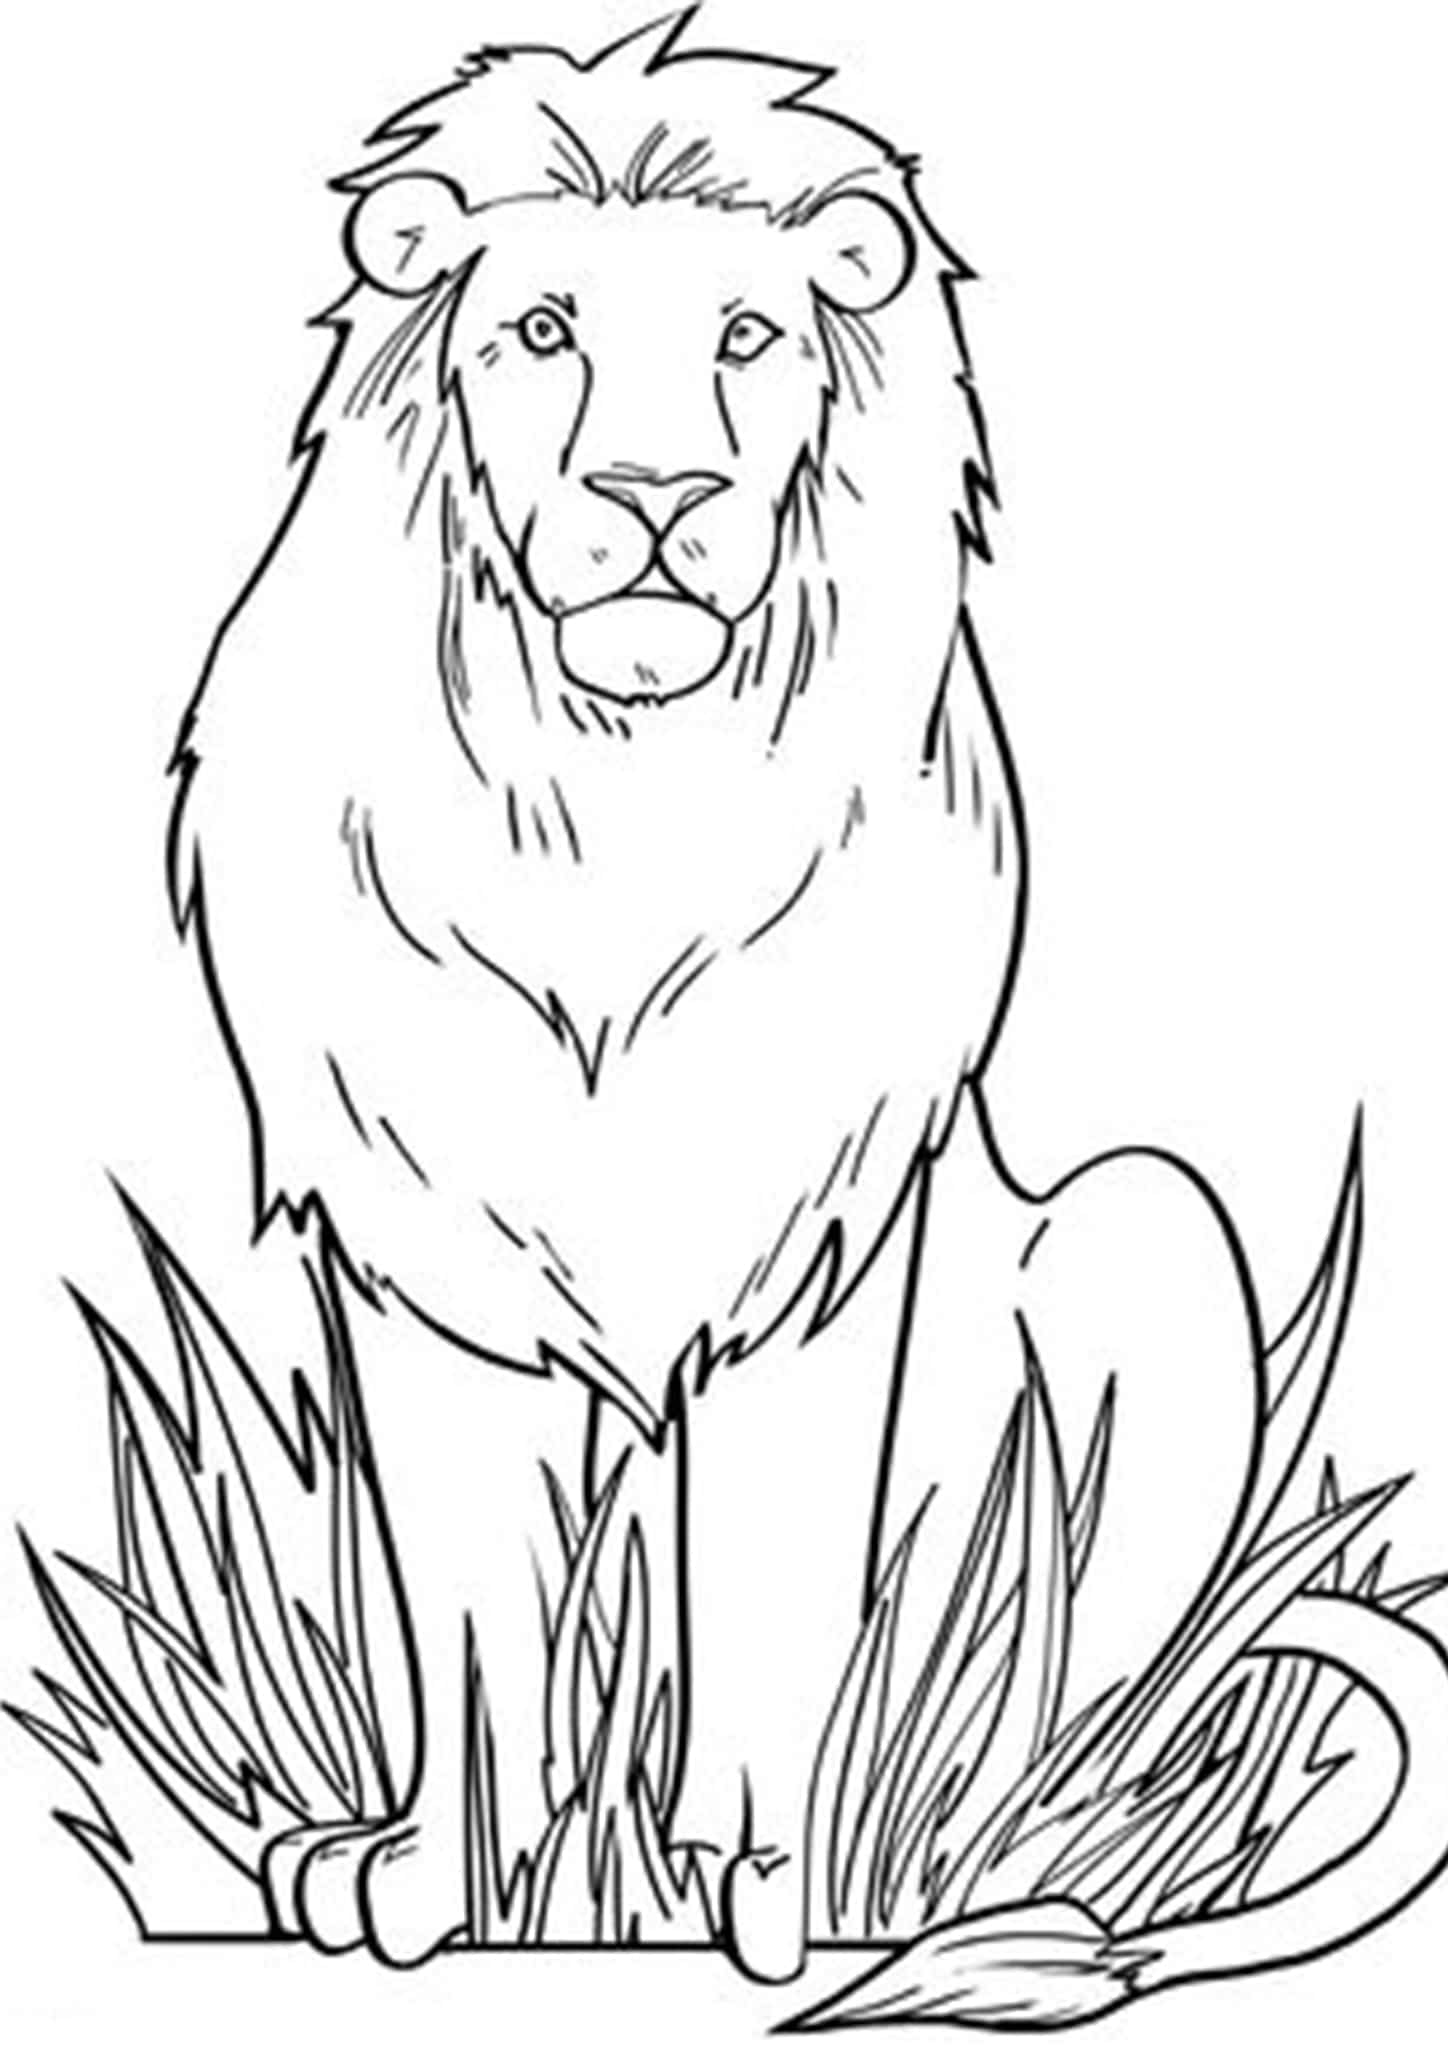 picture of a lion to color lion coloring pages wecoloringpagecom picture to lion color a of